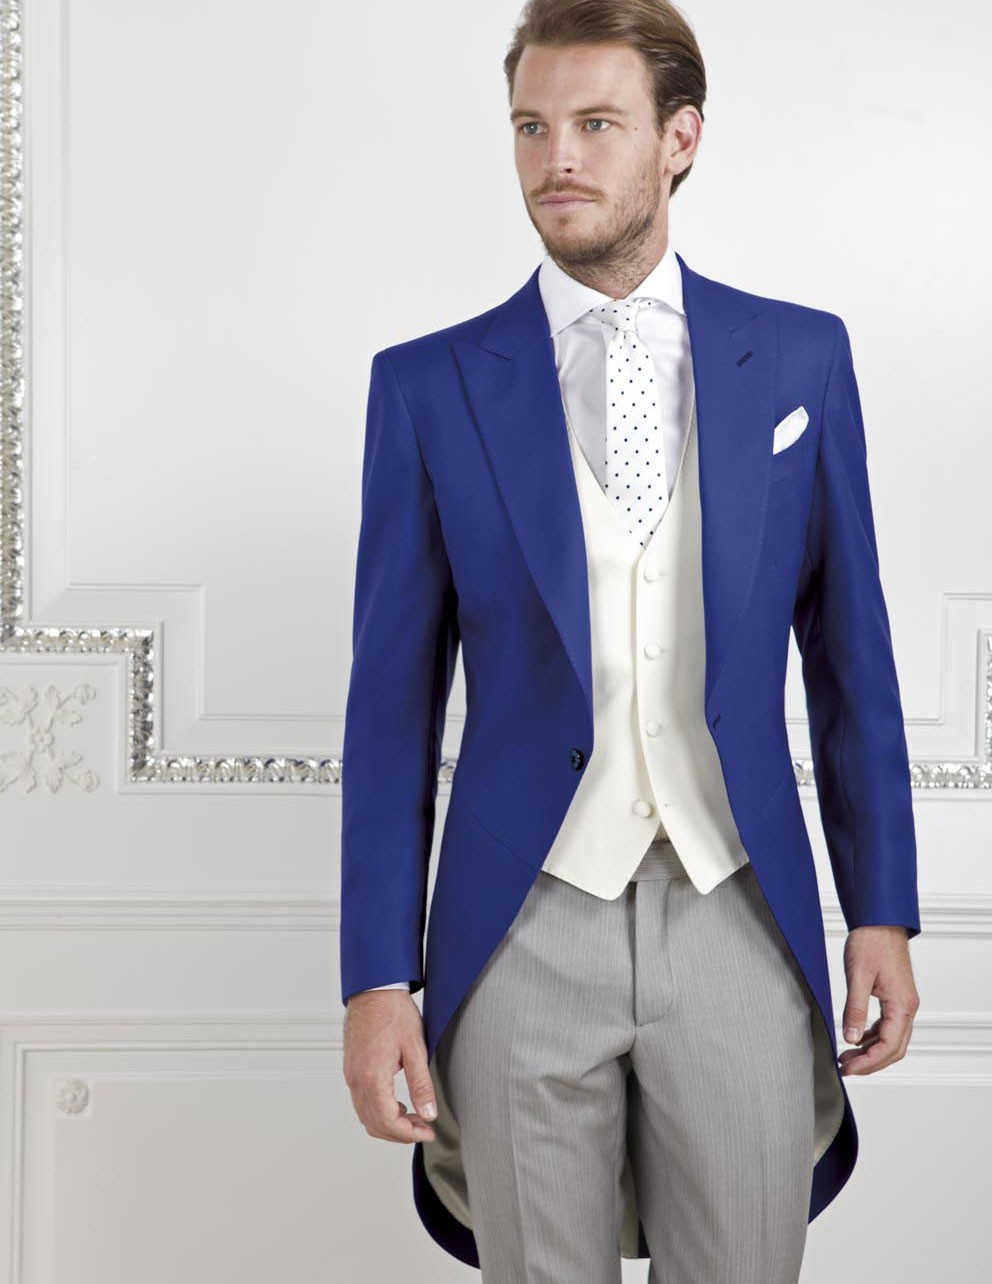 Royal Blue Groom Morning Suits Groomsman Men s Wedding Prom Suits Jacket Pants Vest Tie H